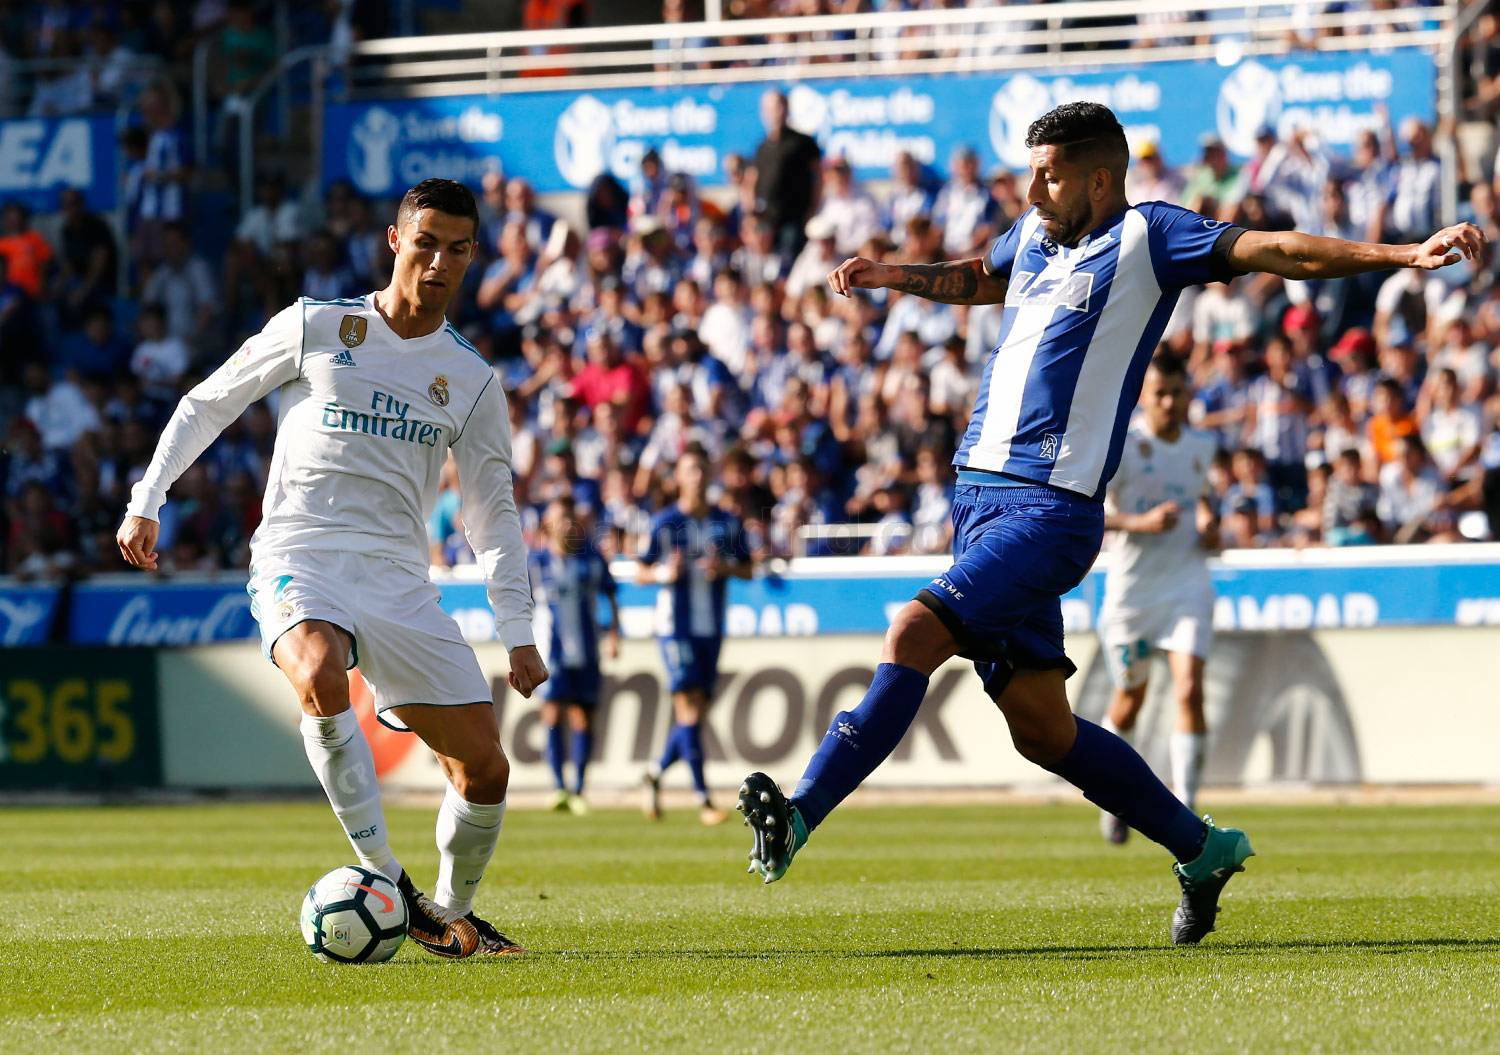 Real Madrid - Alavés - Real Madrid - 23-09-2017